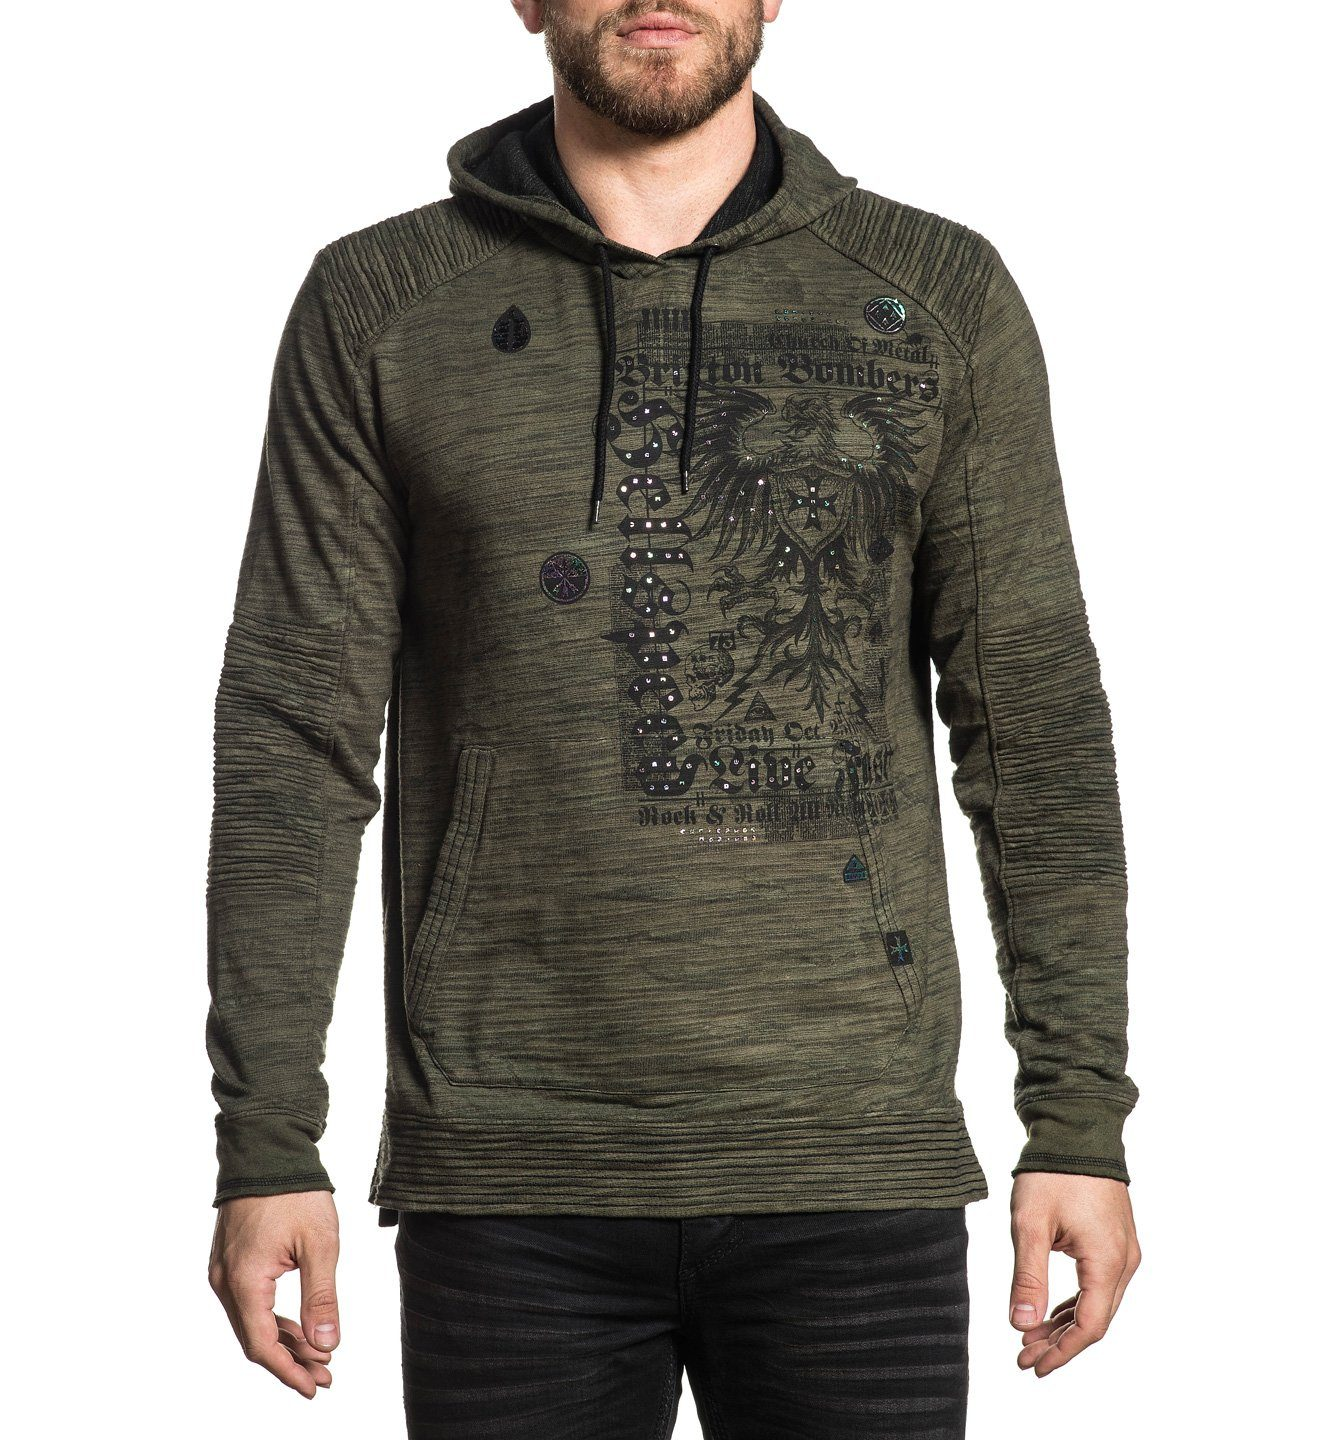 Metal Church - Mens Hooded Sweatshirts - Affliction Clothing